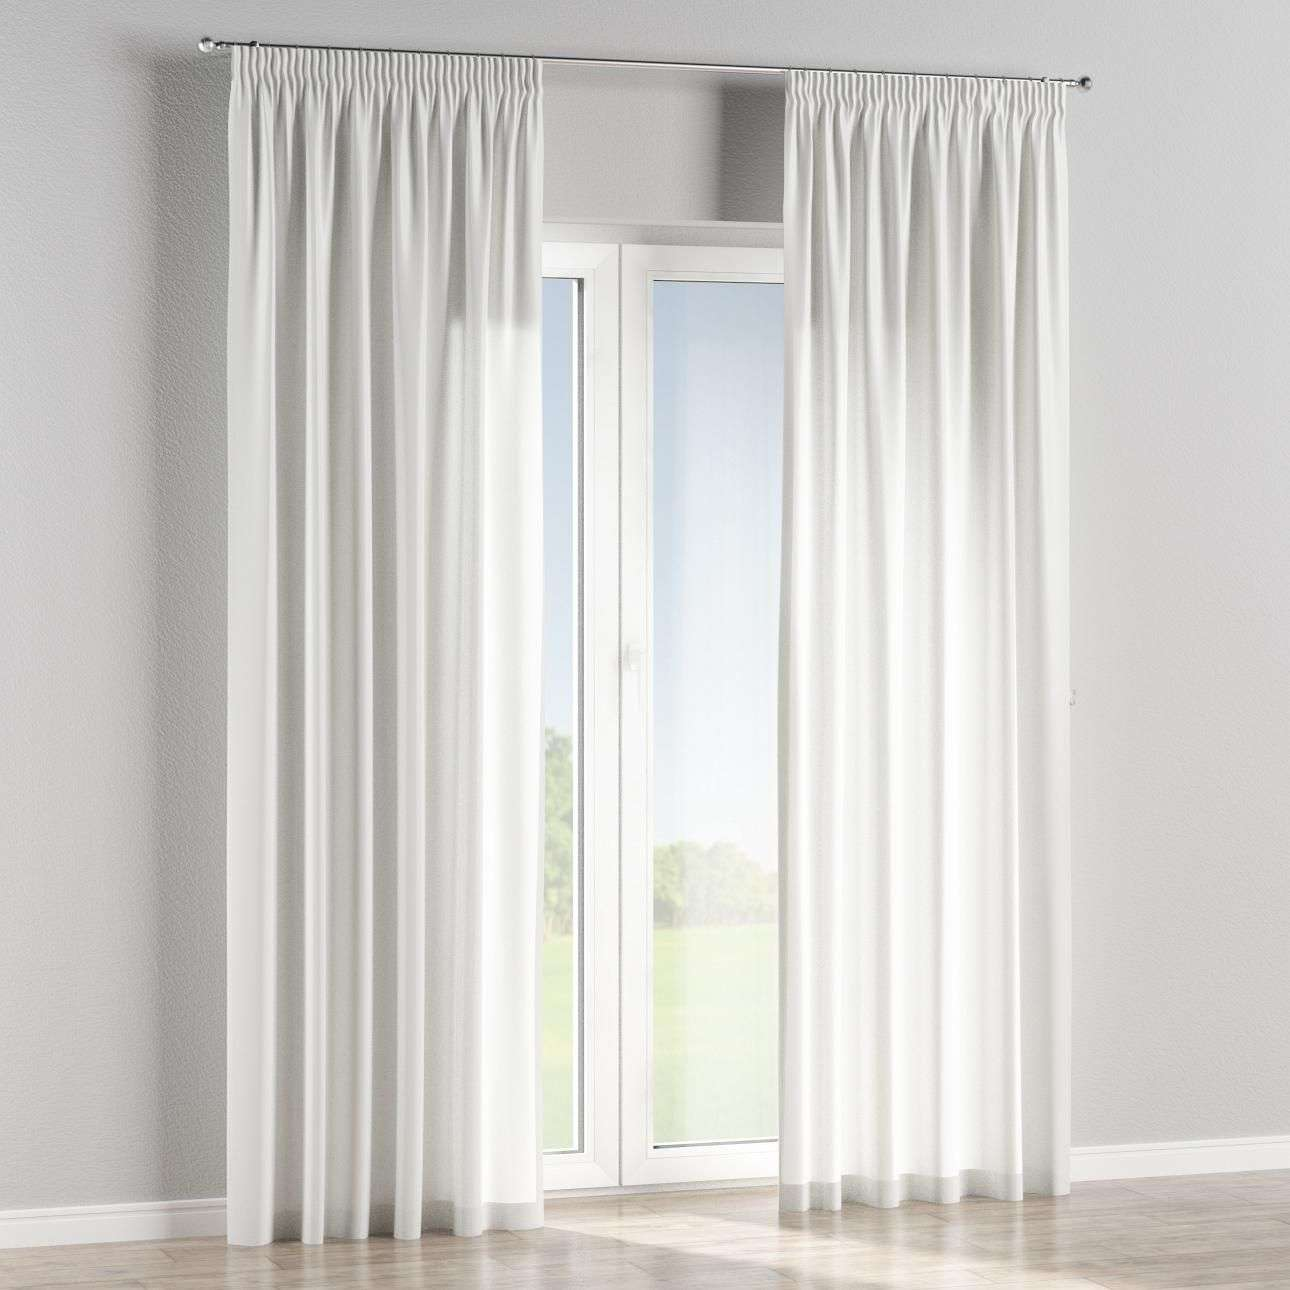 Pencil pleat curtains in collection Jupiter, fabric: 127-04